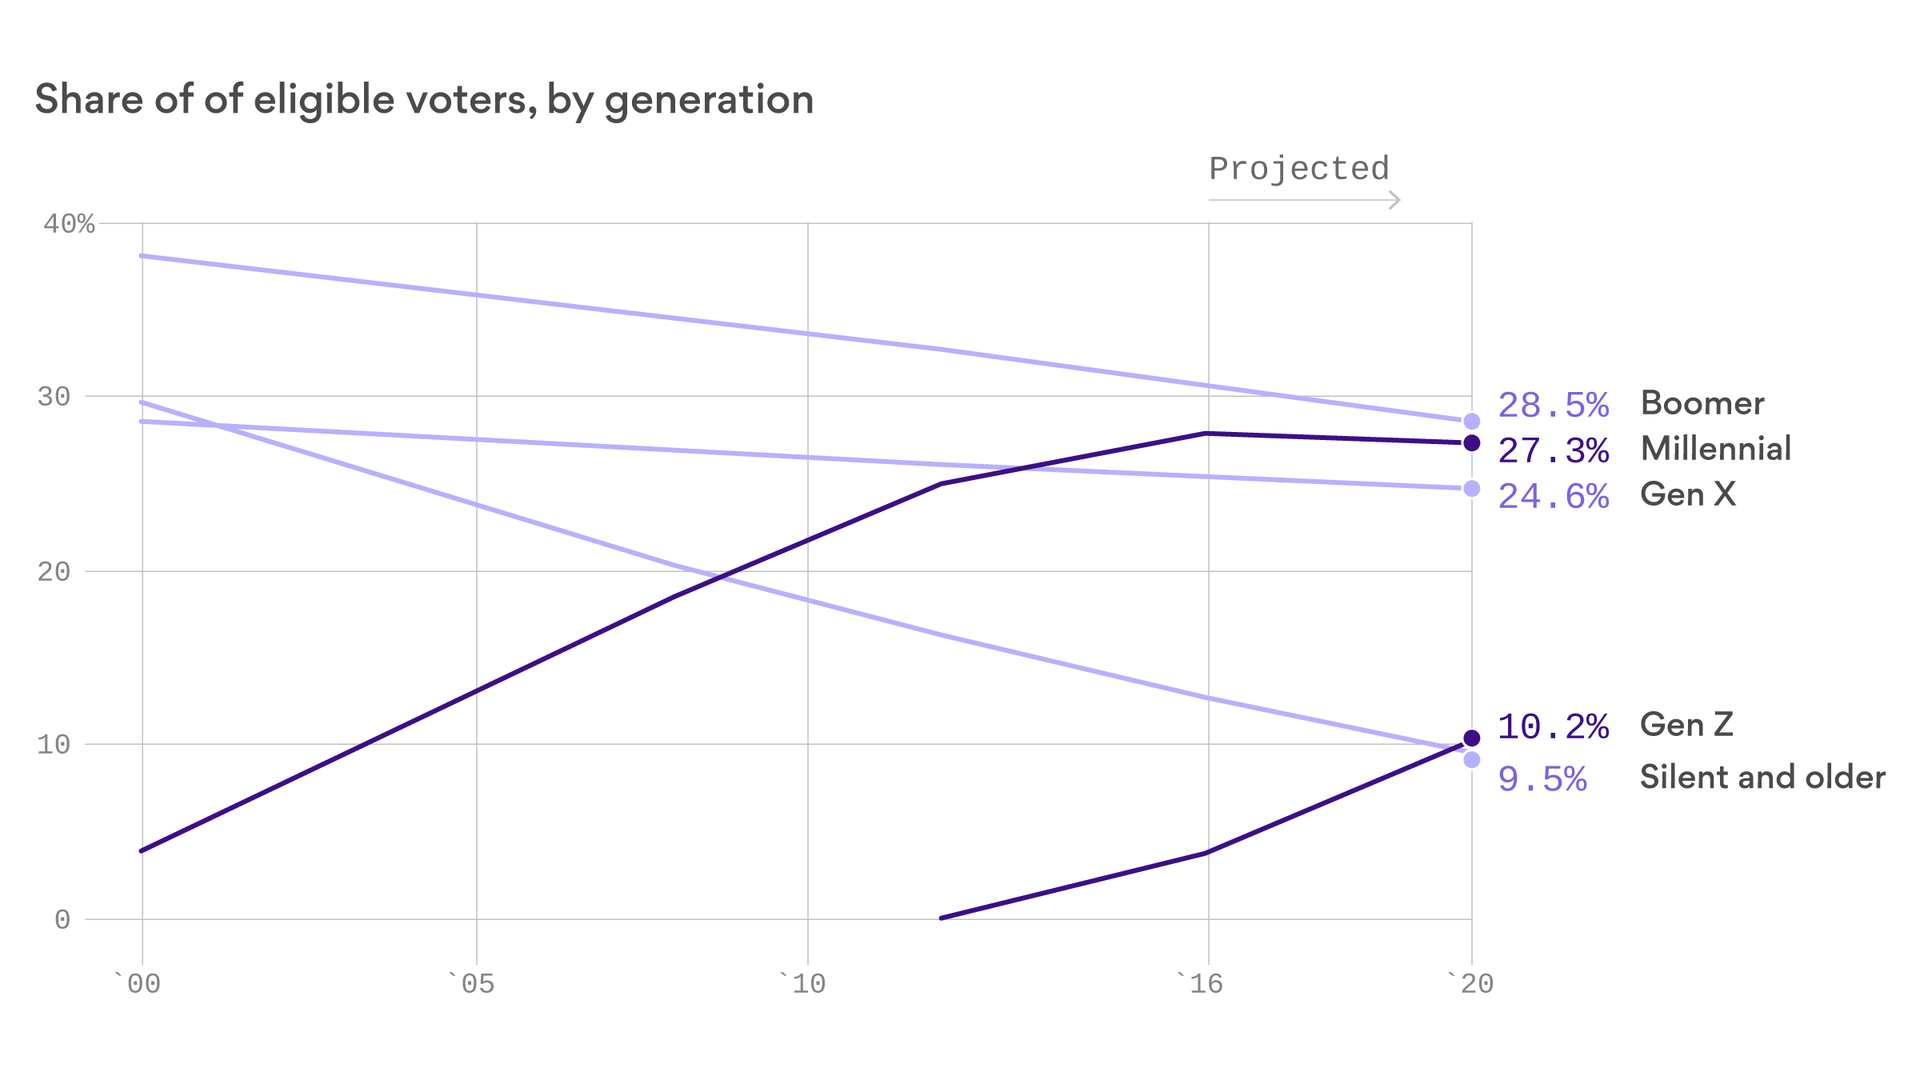 e83a527c434 Millennials and Gen Z will make up 37% of the 2020 electorate - Axios